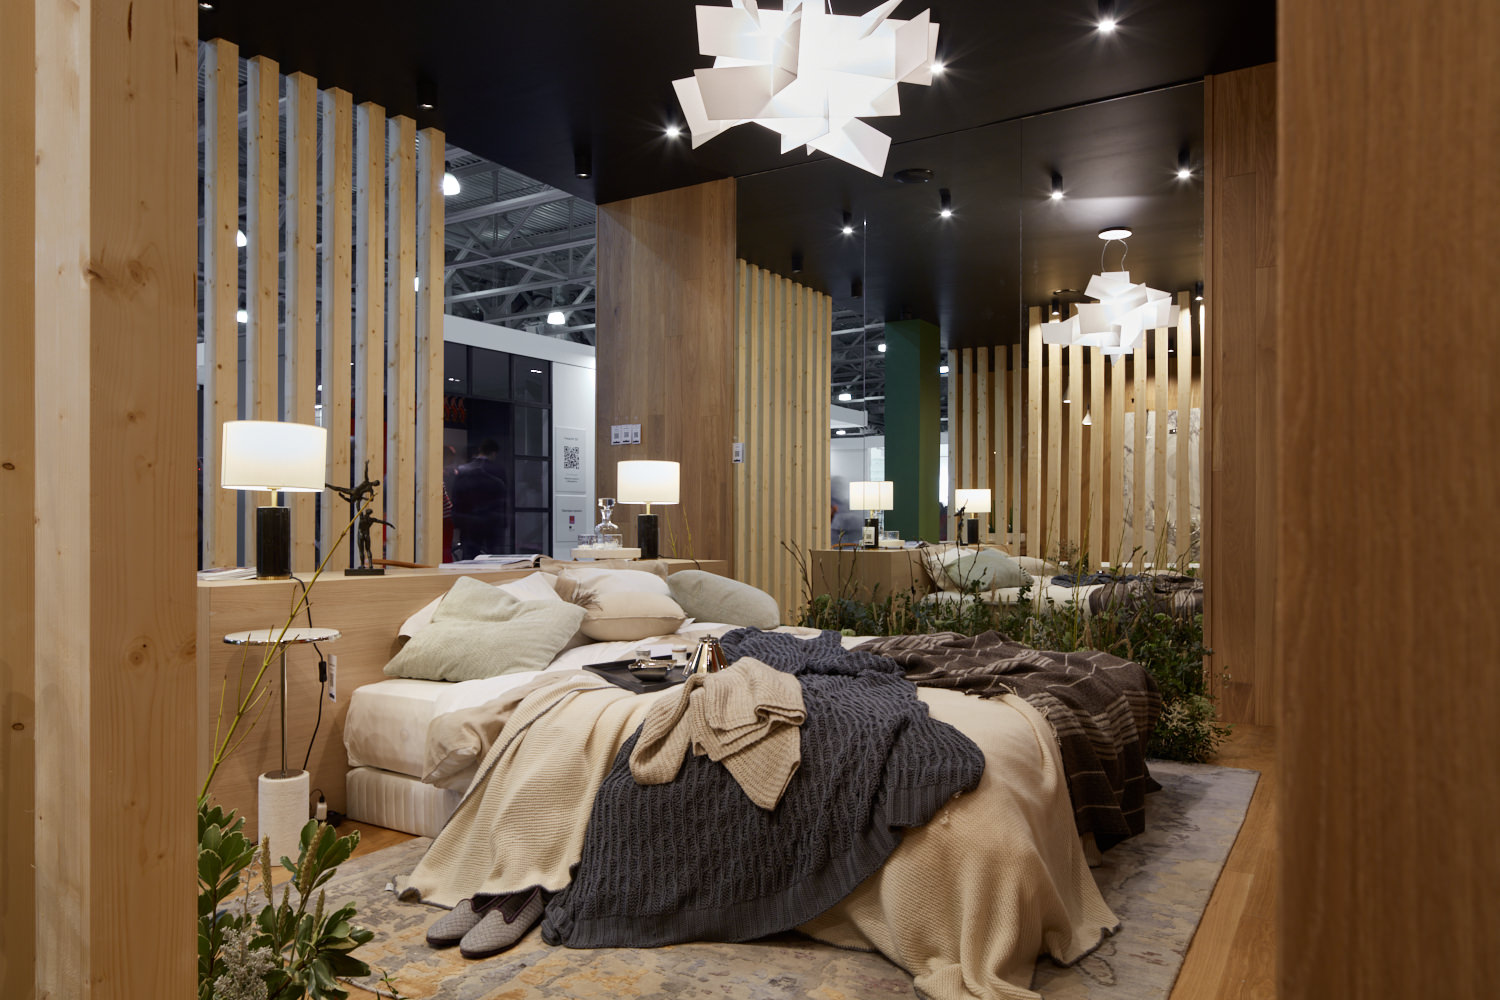 Luxury room in an eco boutique hotel «Emotions», exhibition Batimat Russia 2020